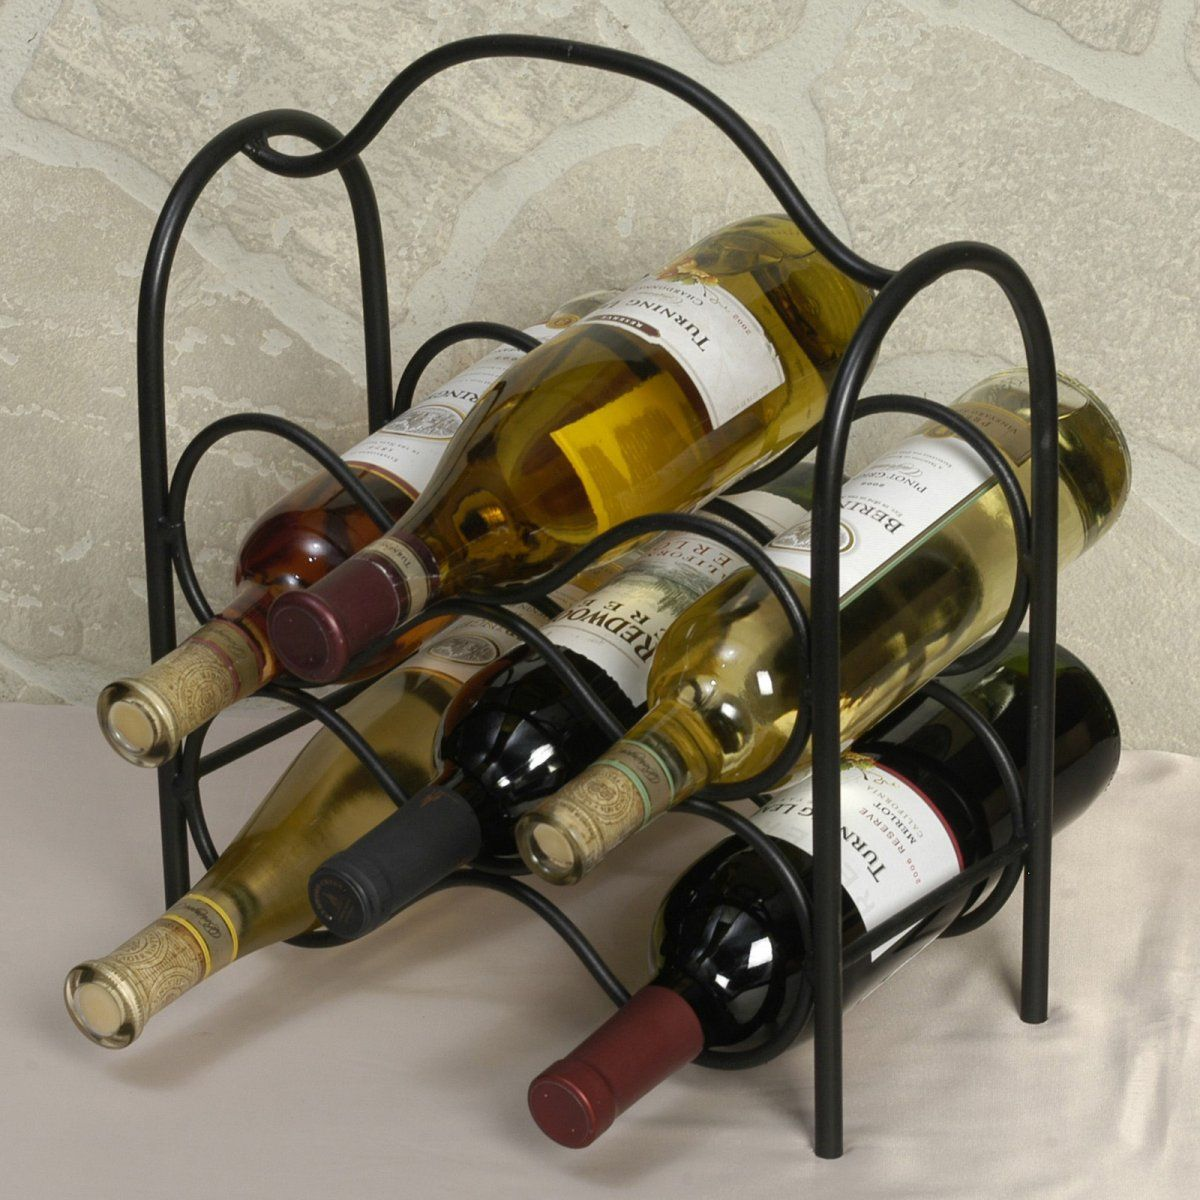 wine glass stands metal cabinet for home tuscan design a batmakumba bottle kt rack racks buy archives her on wood tag small eye